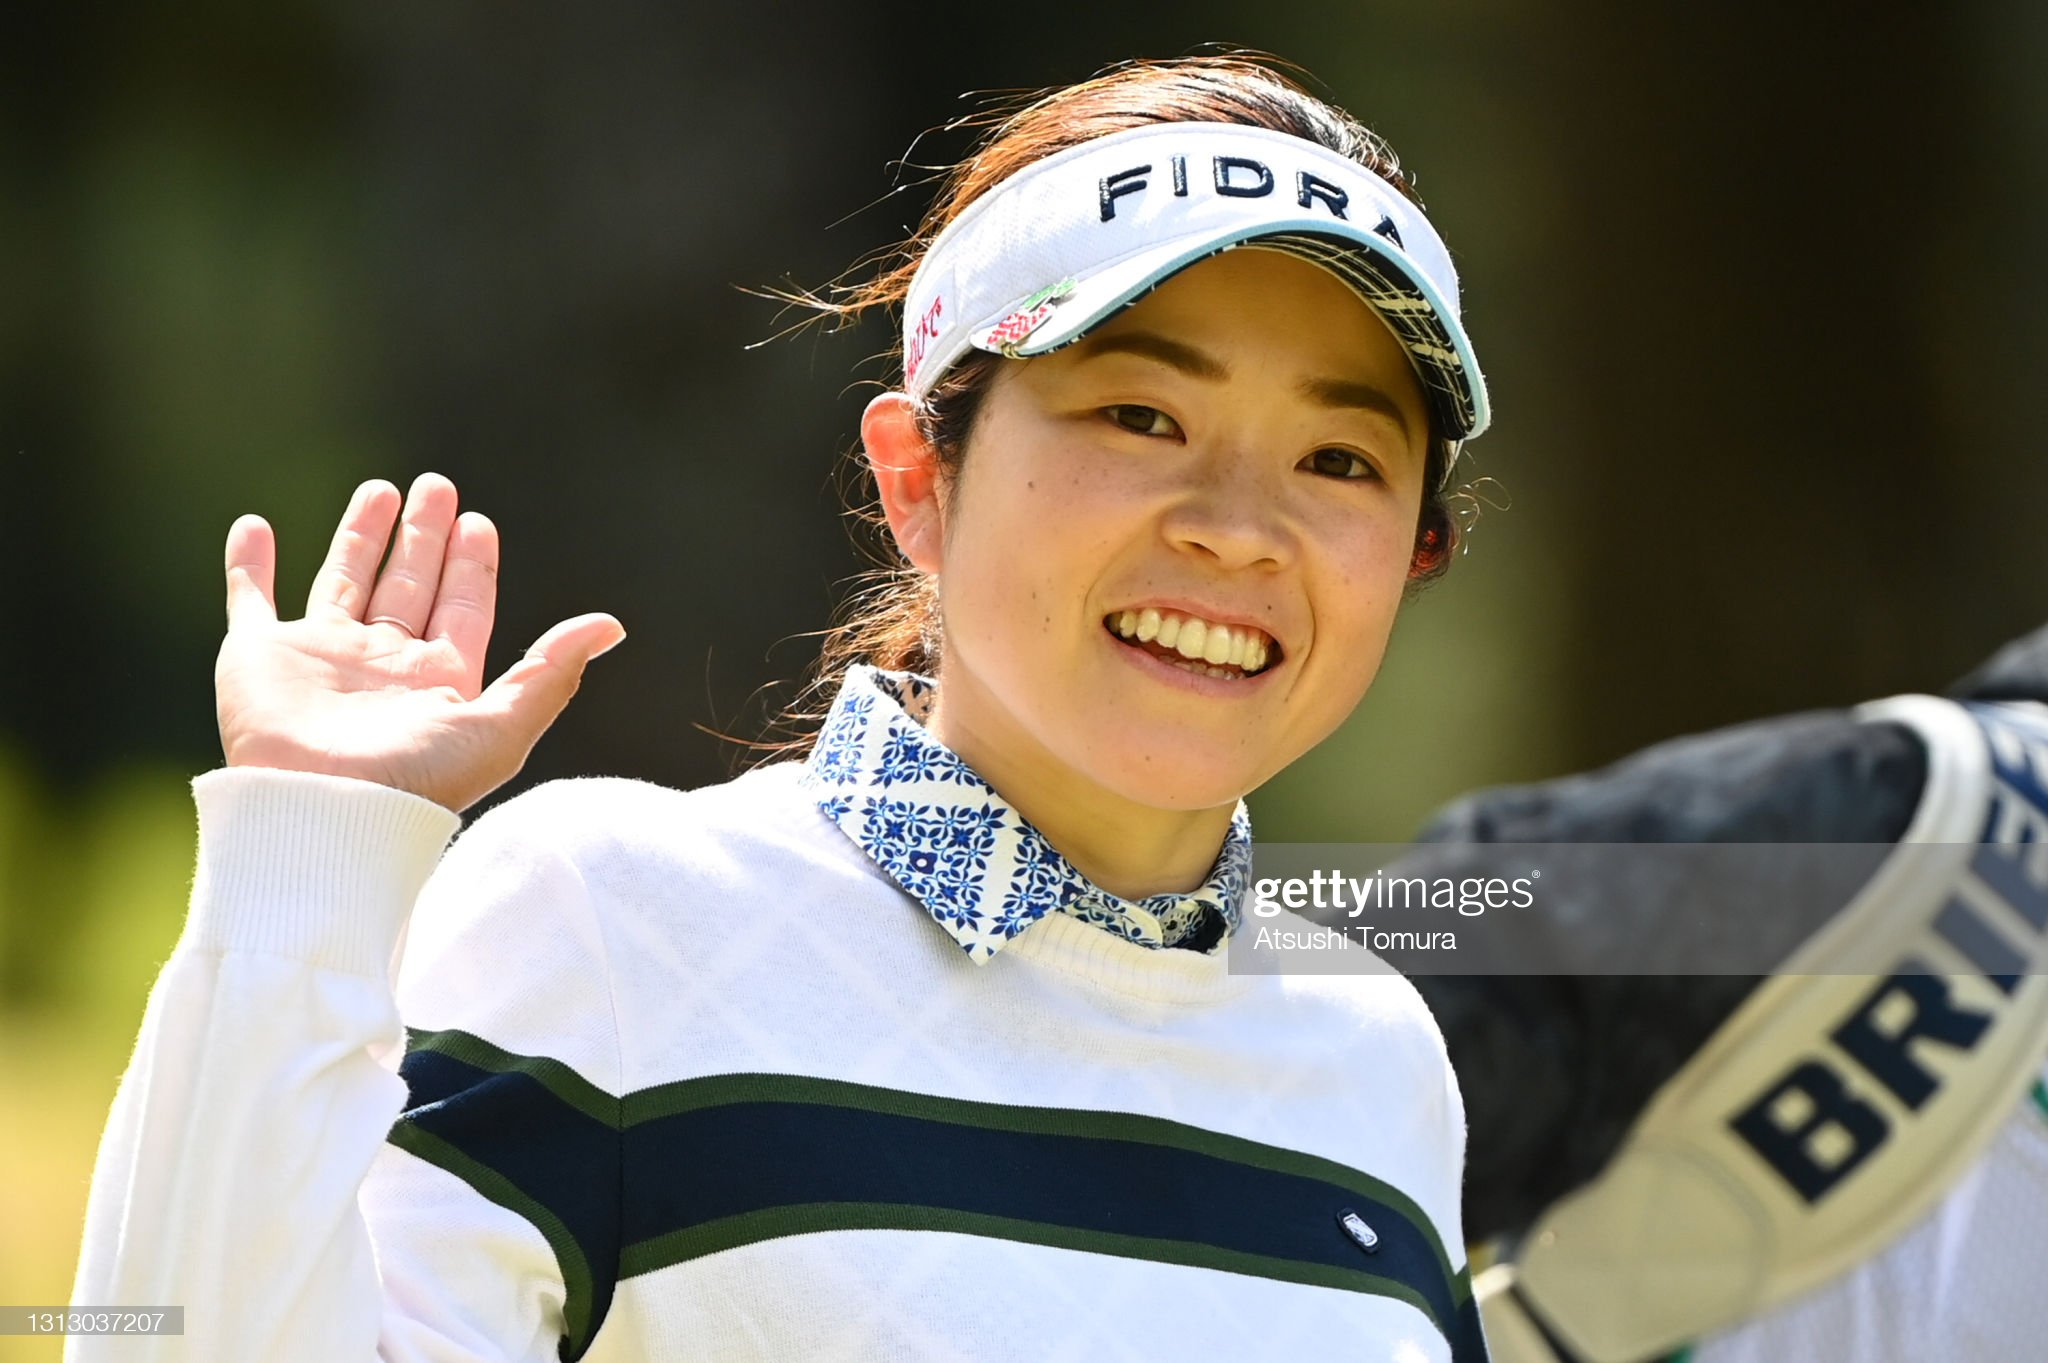 https://media.gettyimages.com/photos/sumika-nakasone-of-japan-waves-on-the-5th-hole-during-the-final-round-picture-id1313037207?s=2048x2048